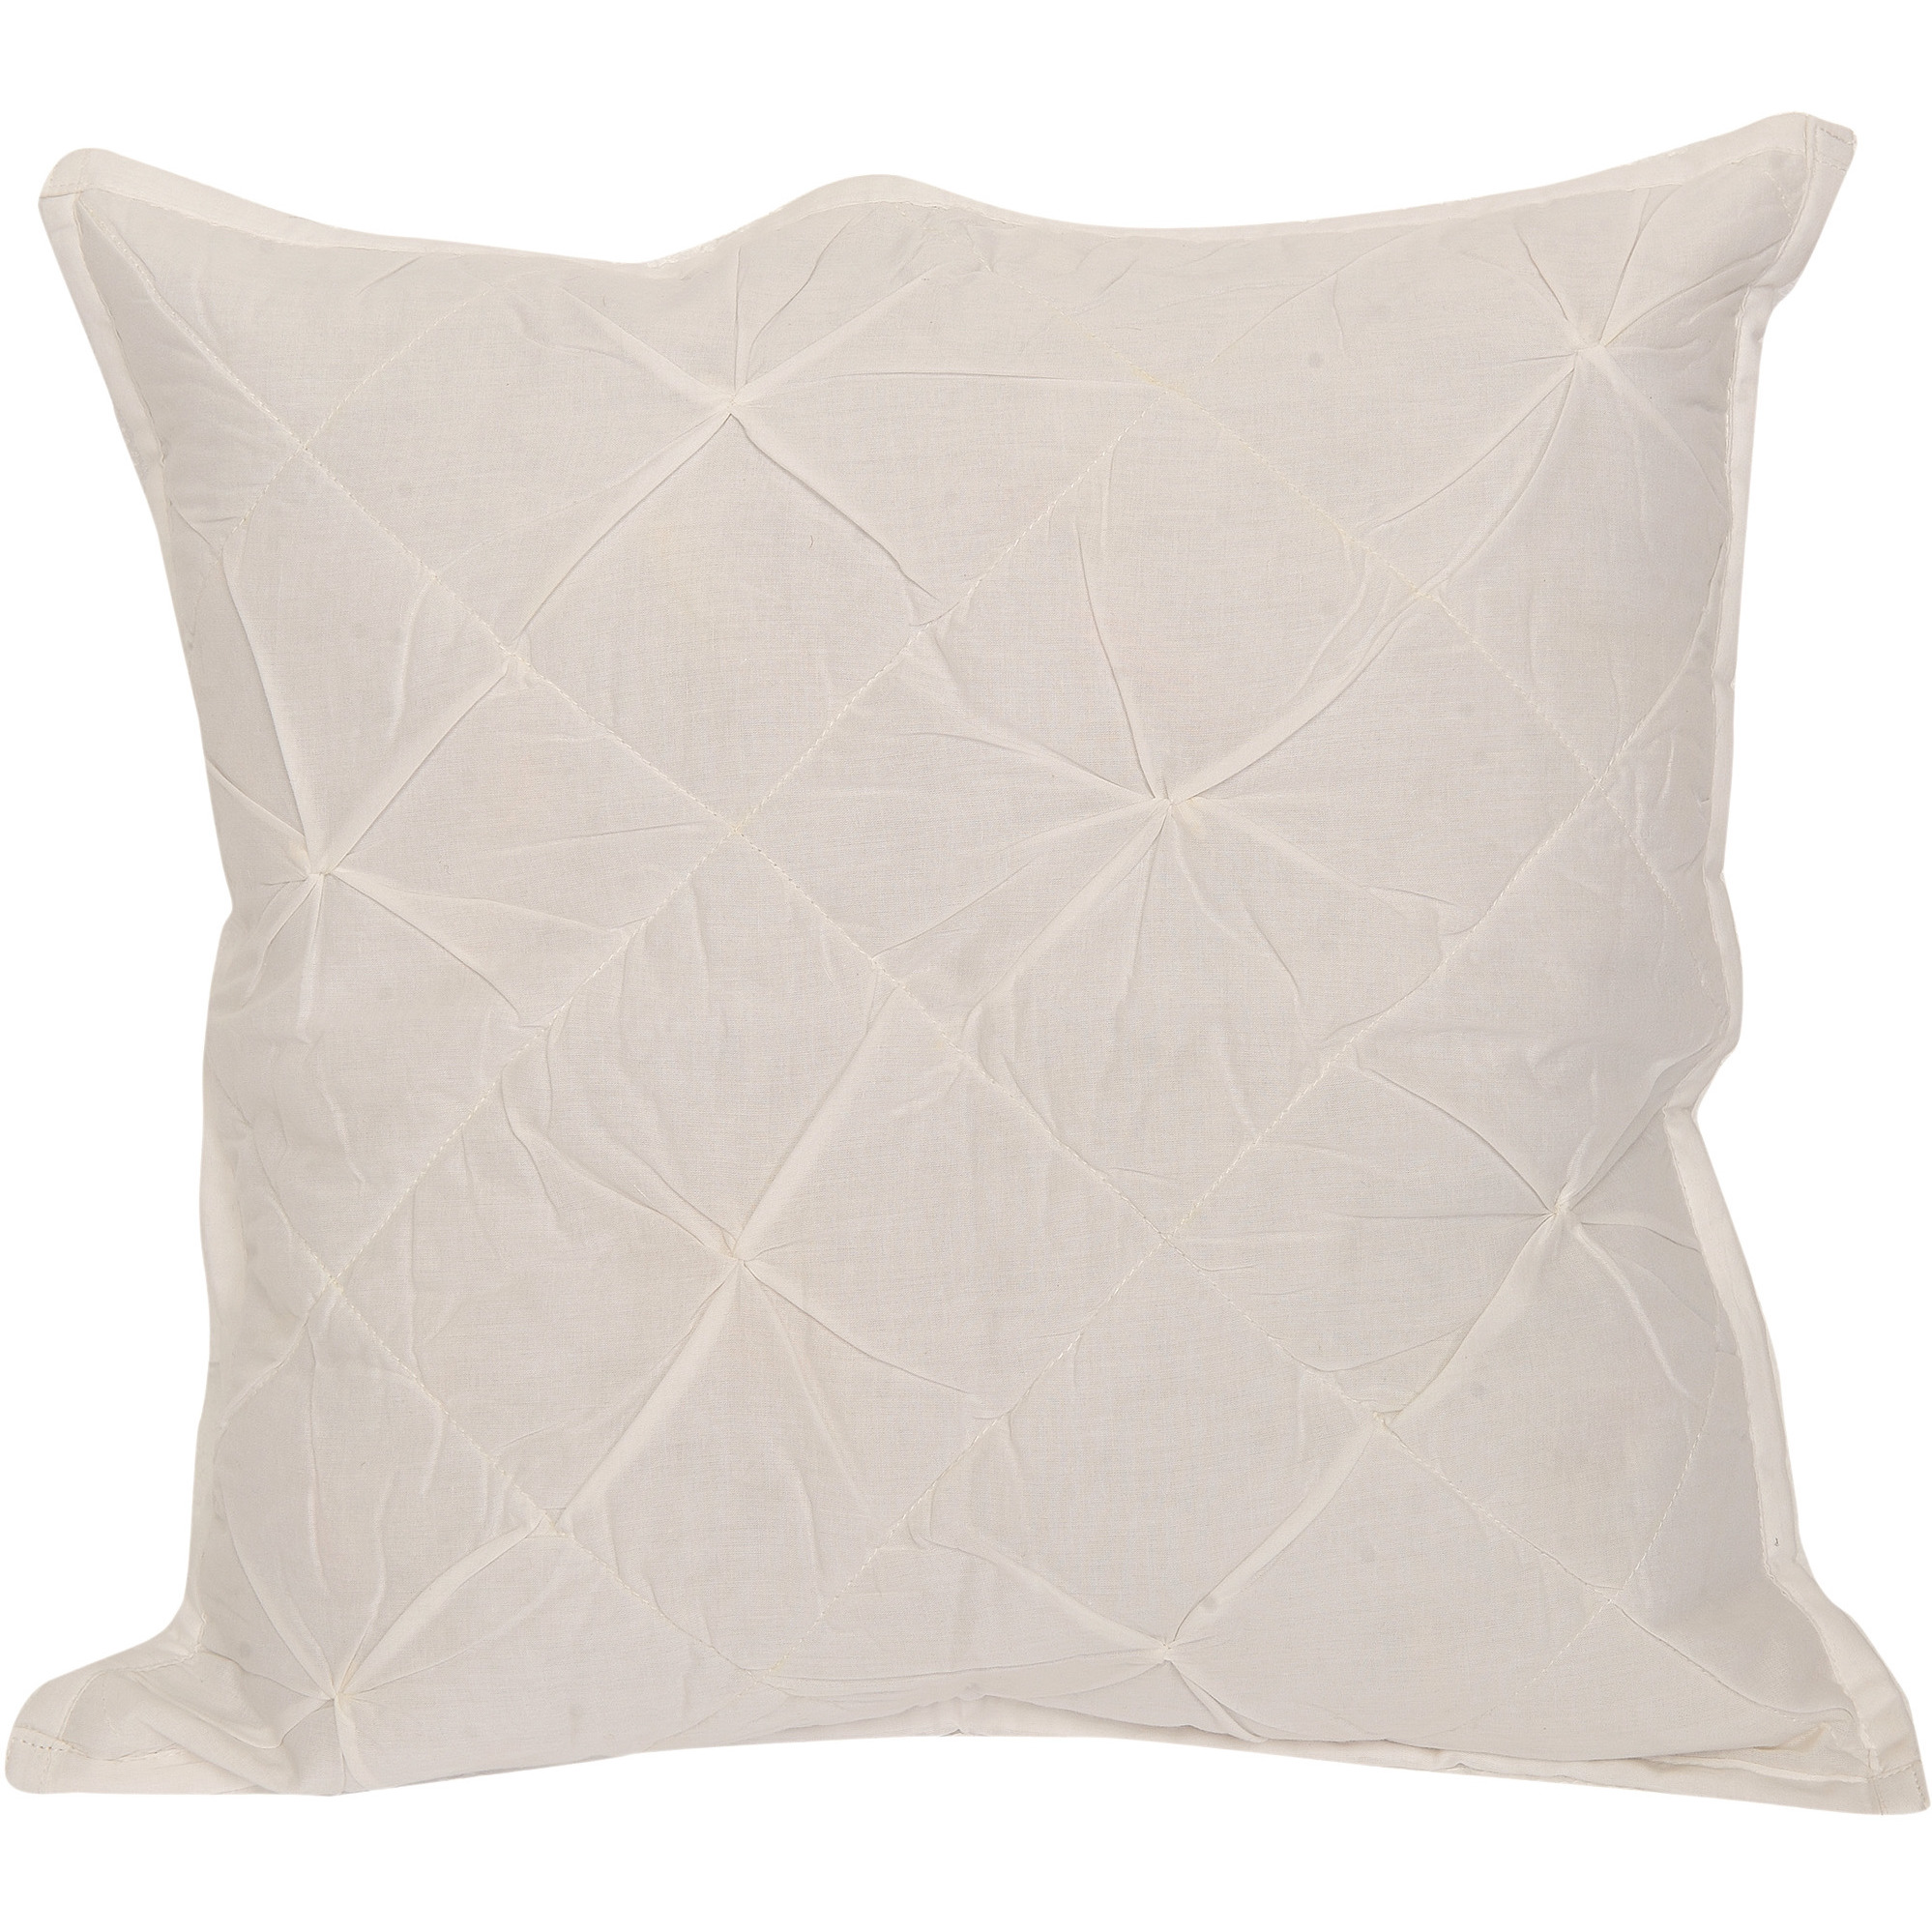 Snow-White Cushion Cover with Thread Work